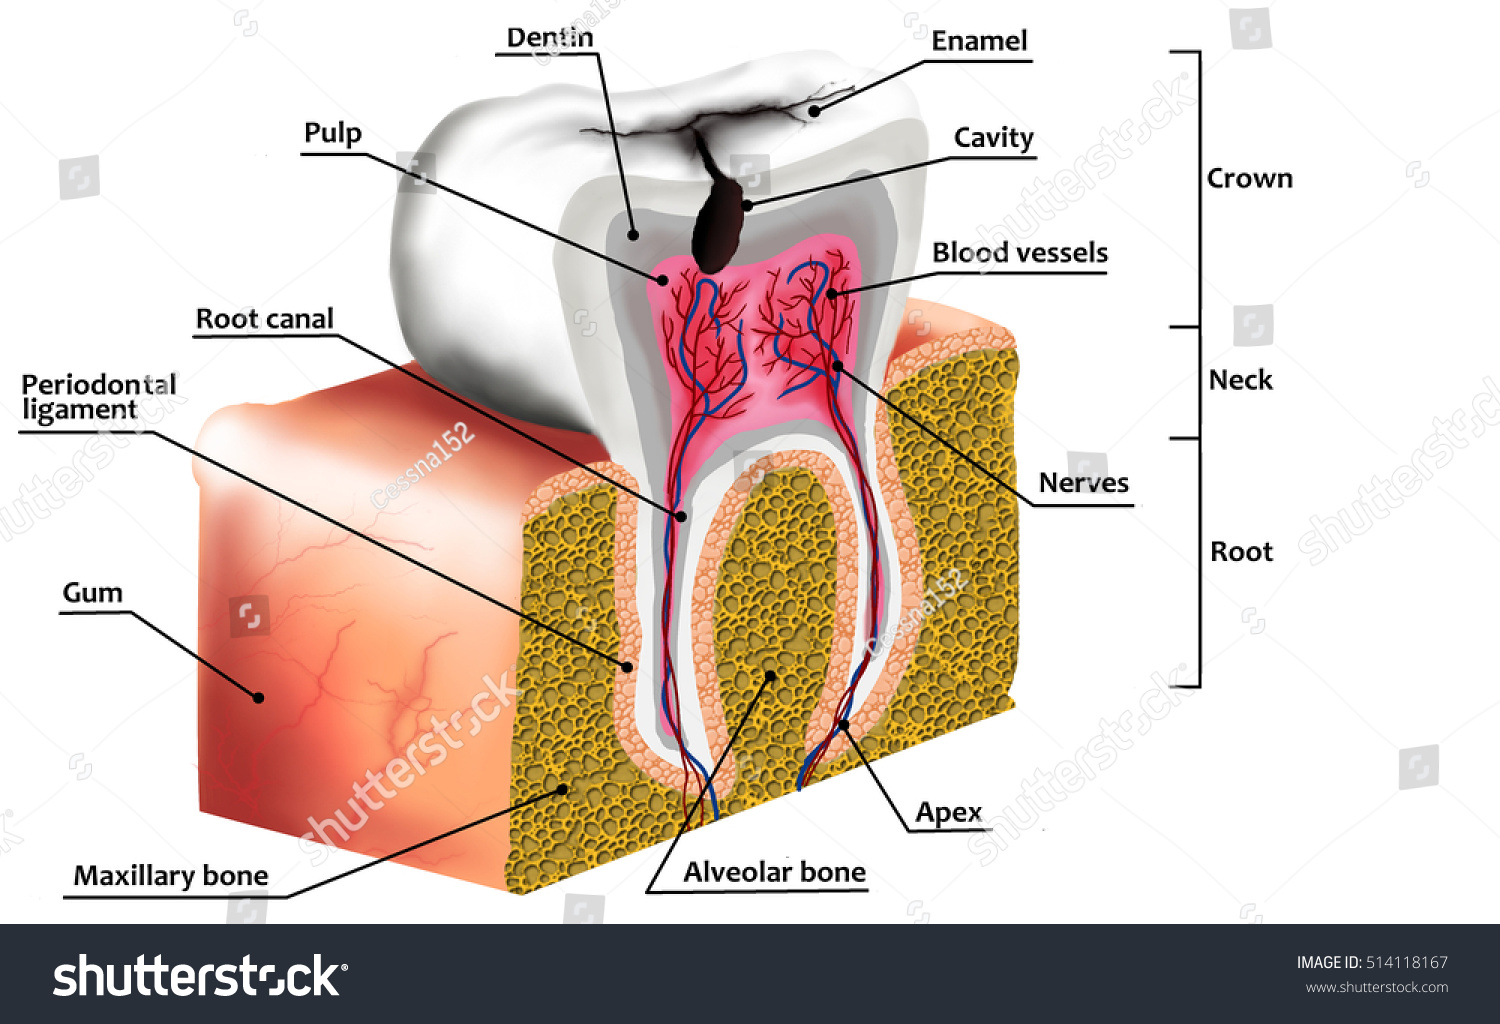 Human Tooth Decay Anatomy Diagram Description Stock Illustration